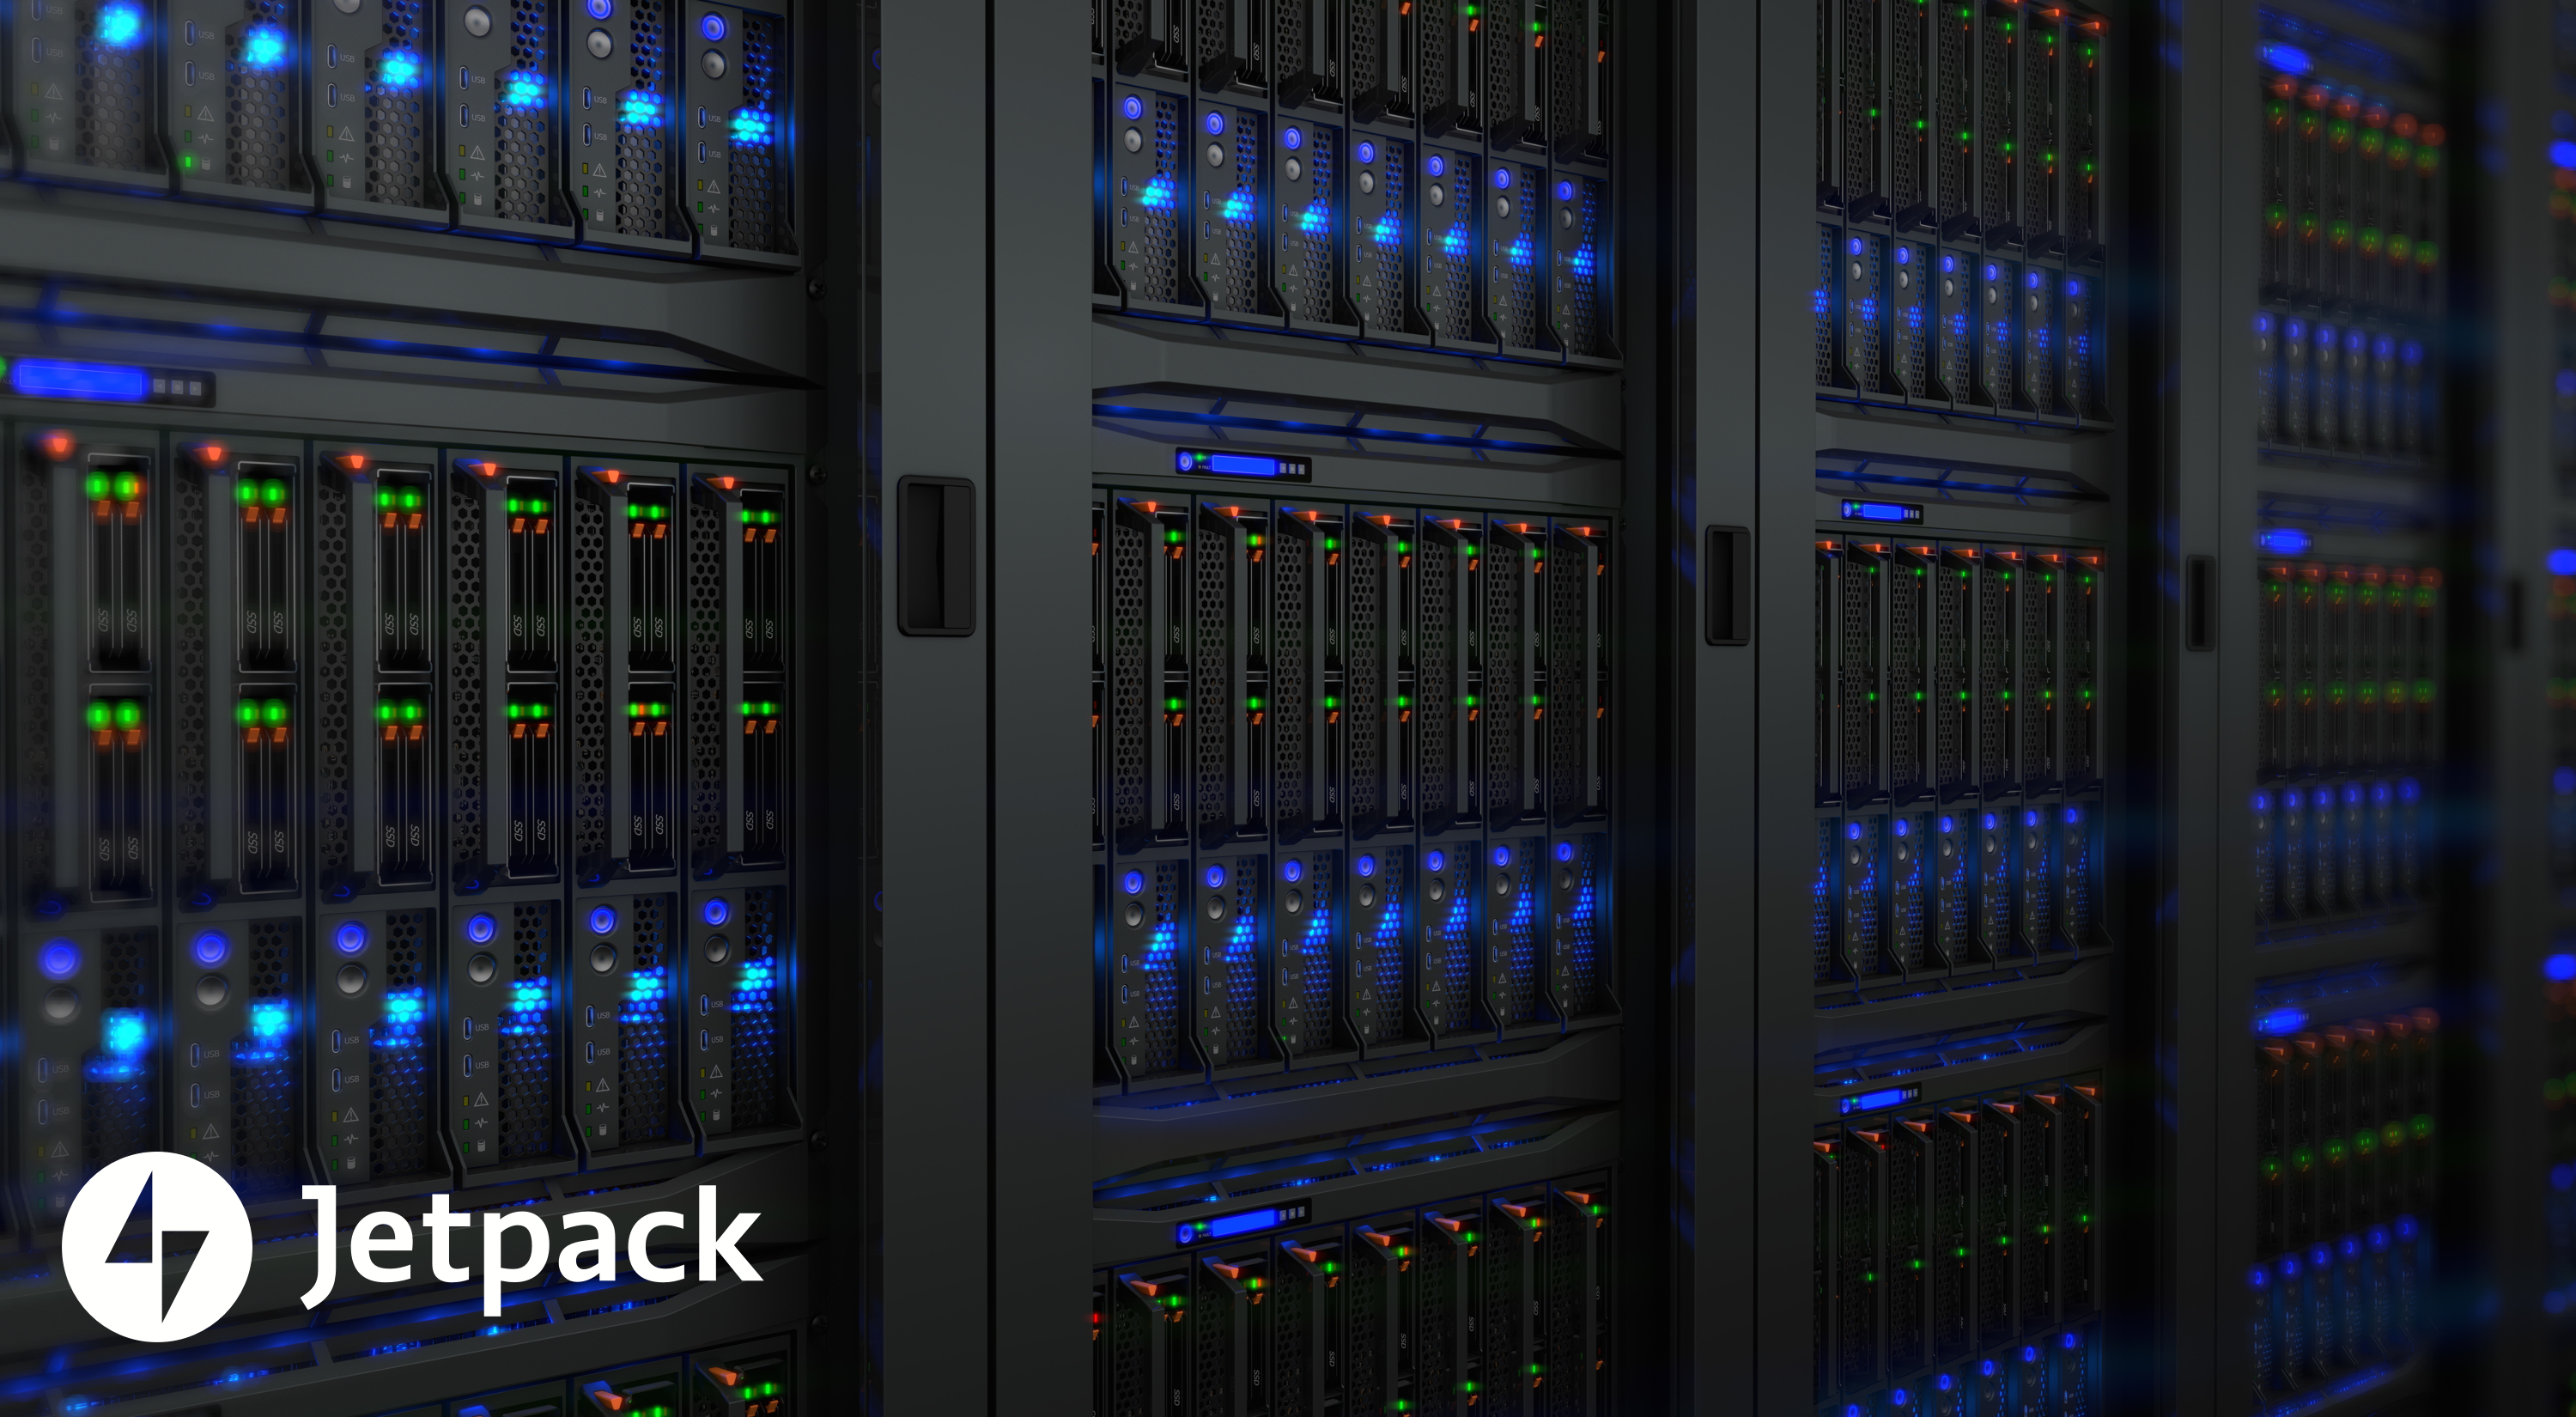 Why You Should Trust Your Site to Jetpack Backup